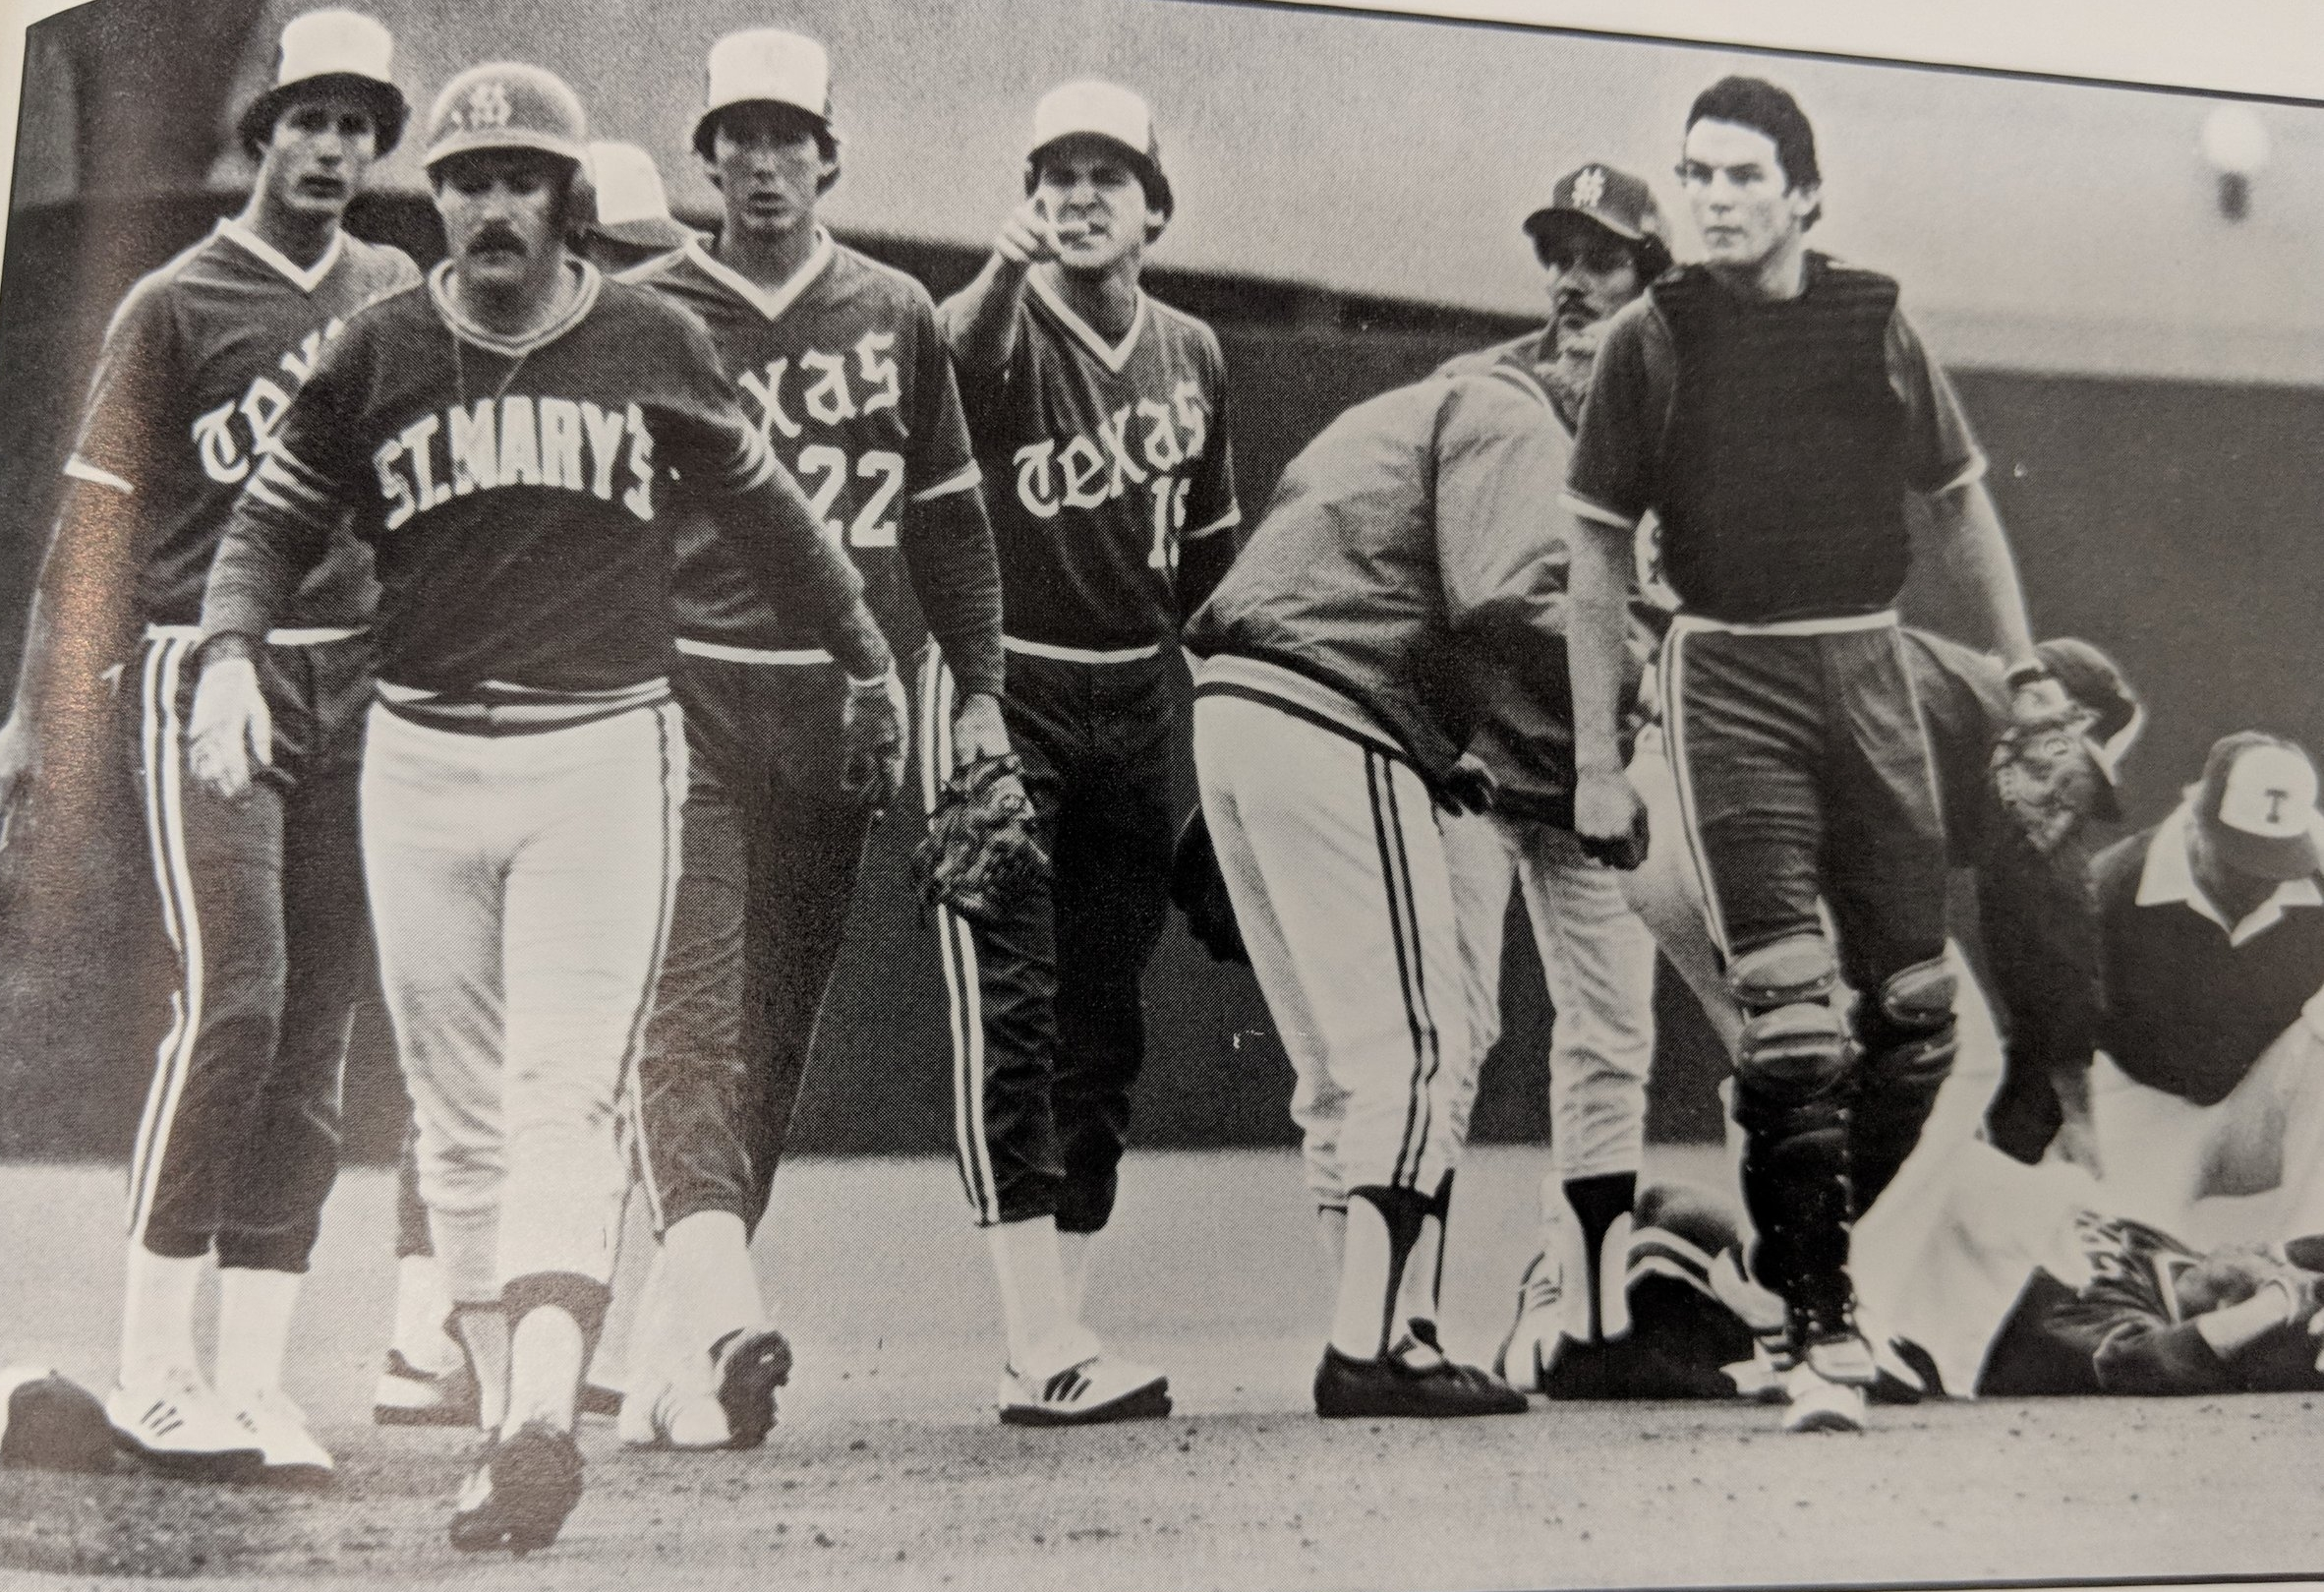 St. Mary's Steve Rambie walks away from second base as Texas players taunt him after a collision with Texas David Dean. David was lost for the season.